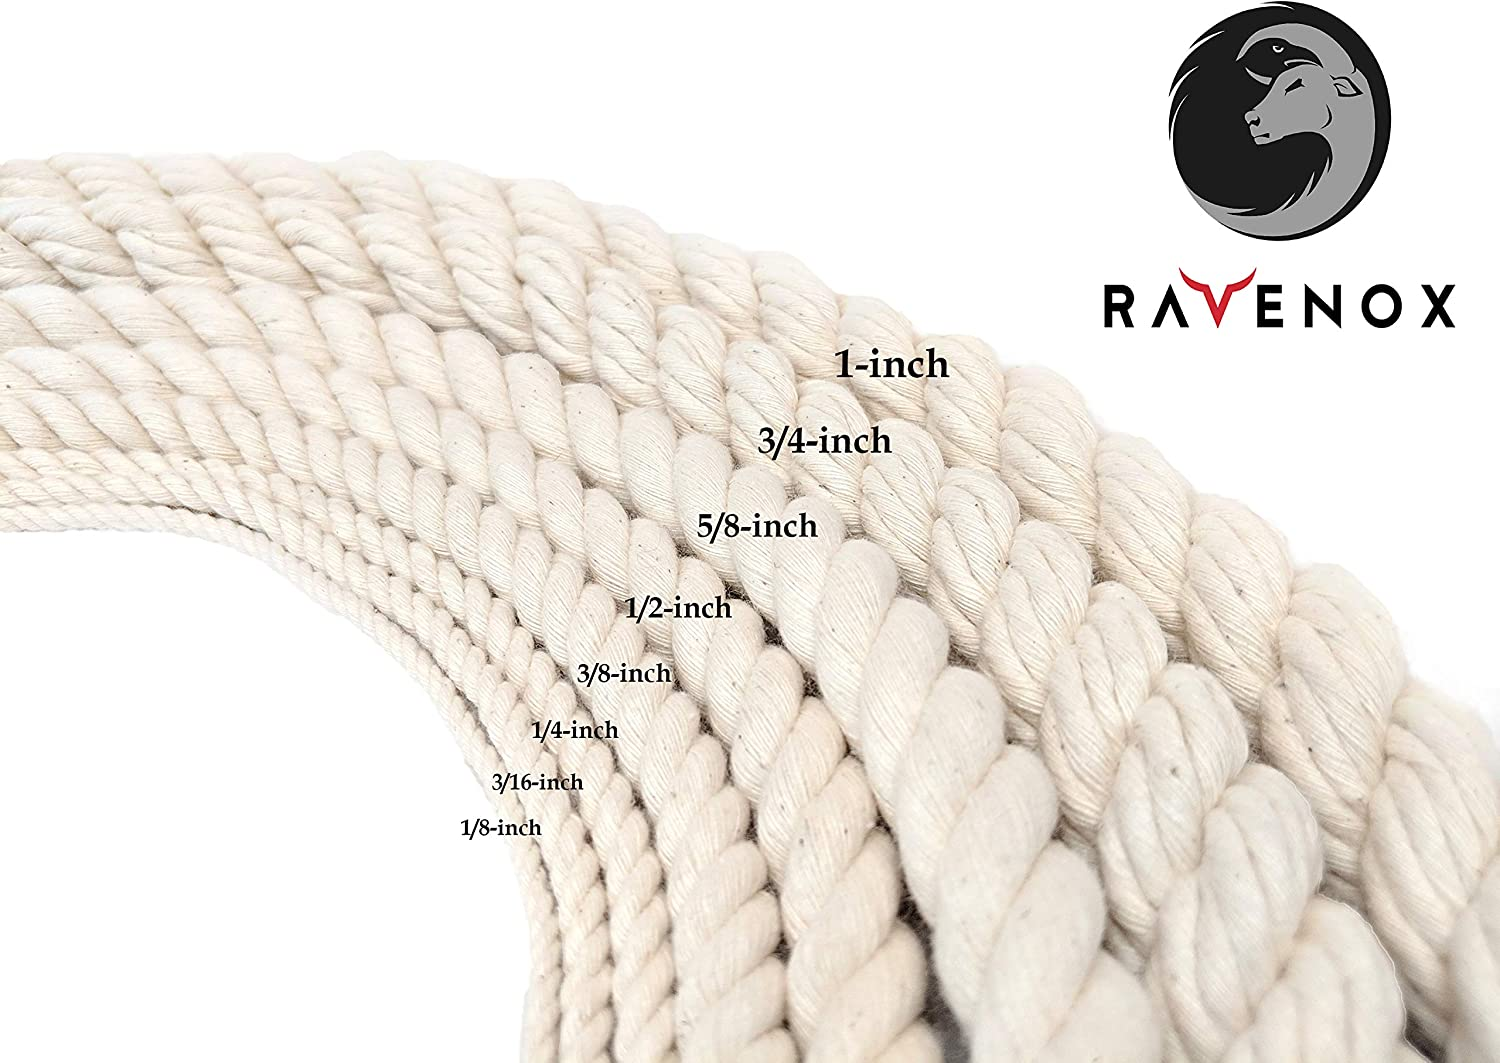 Crafts |USA Made Natural Cord Pet Toys White Ravenox 100/% Cotton Twisted Rope | Macram/é Knotting Baker /& Butchers Twine 3//8 in x 10 ft